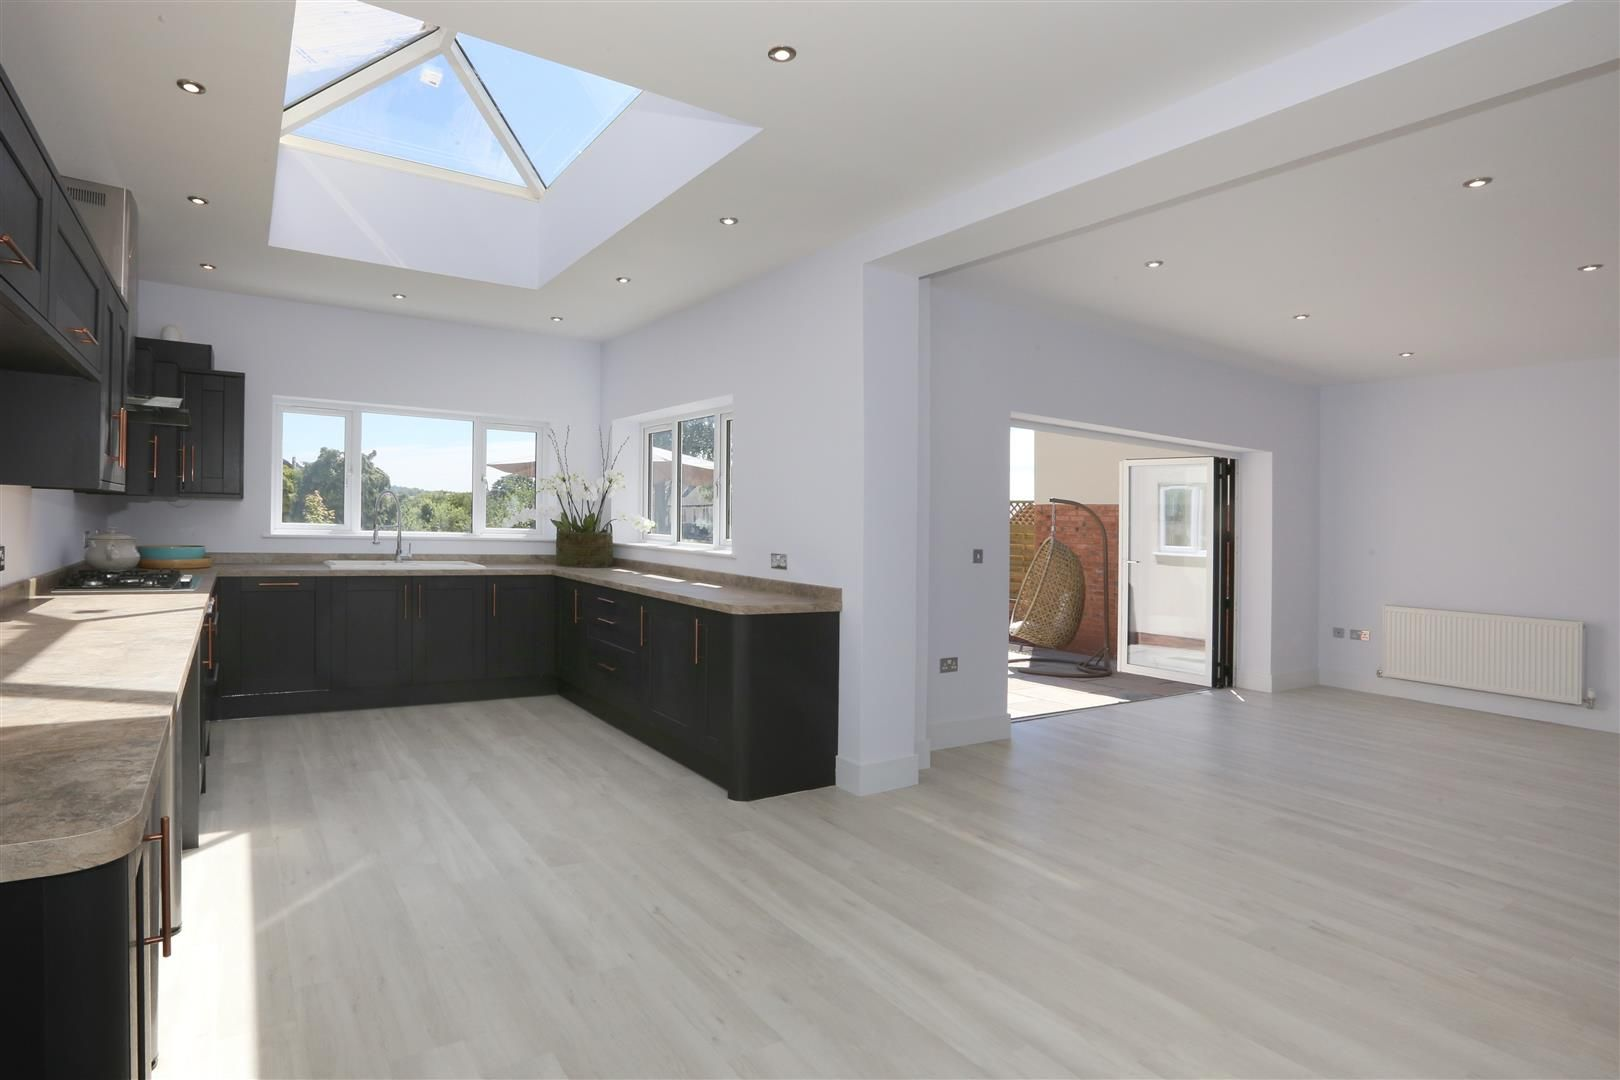 4 bed detached for sale in Hagley  - Property Image 2